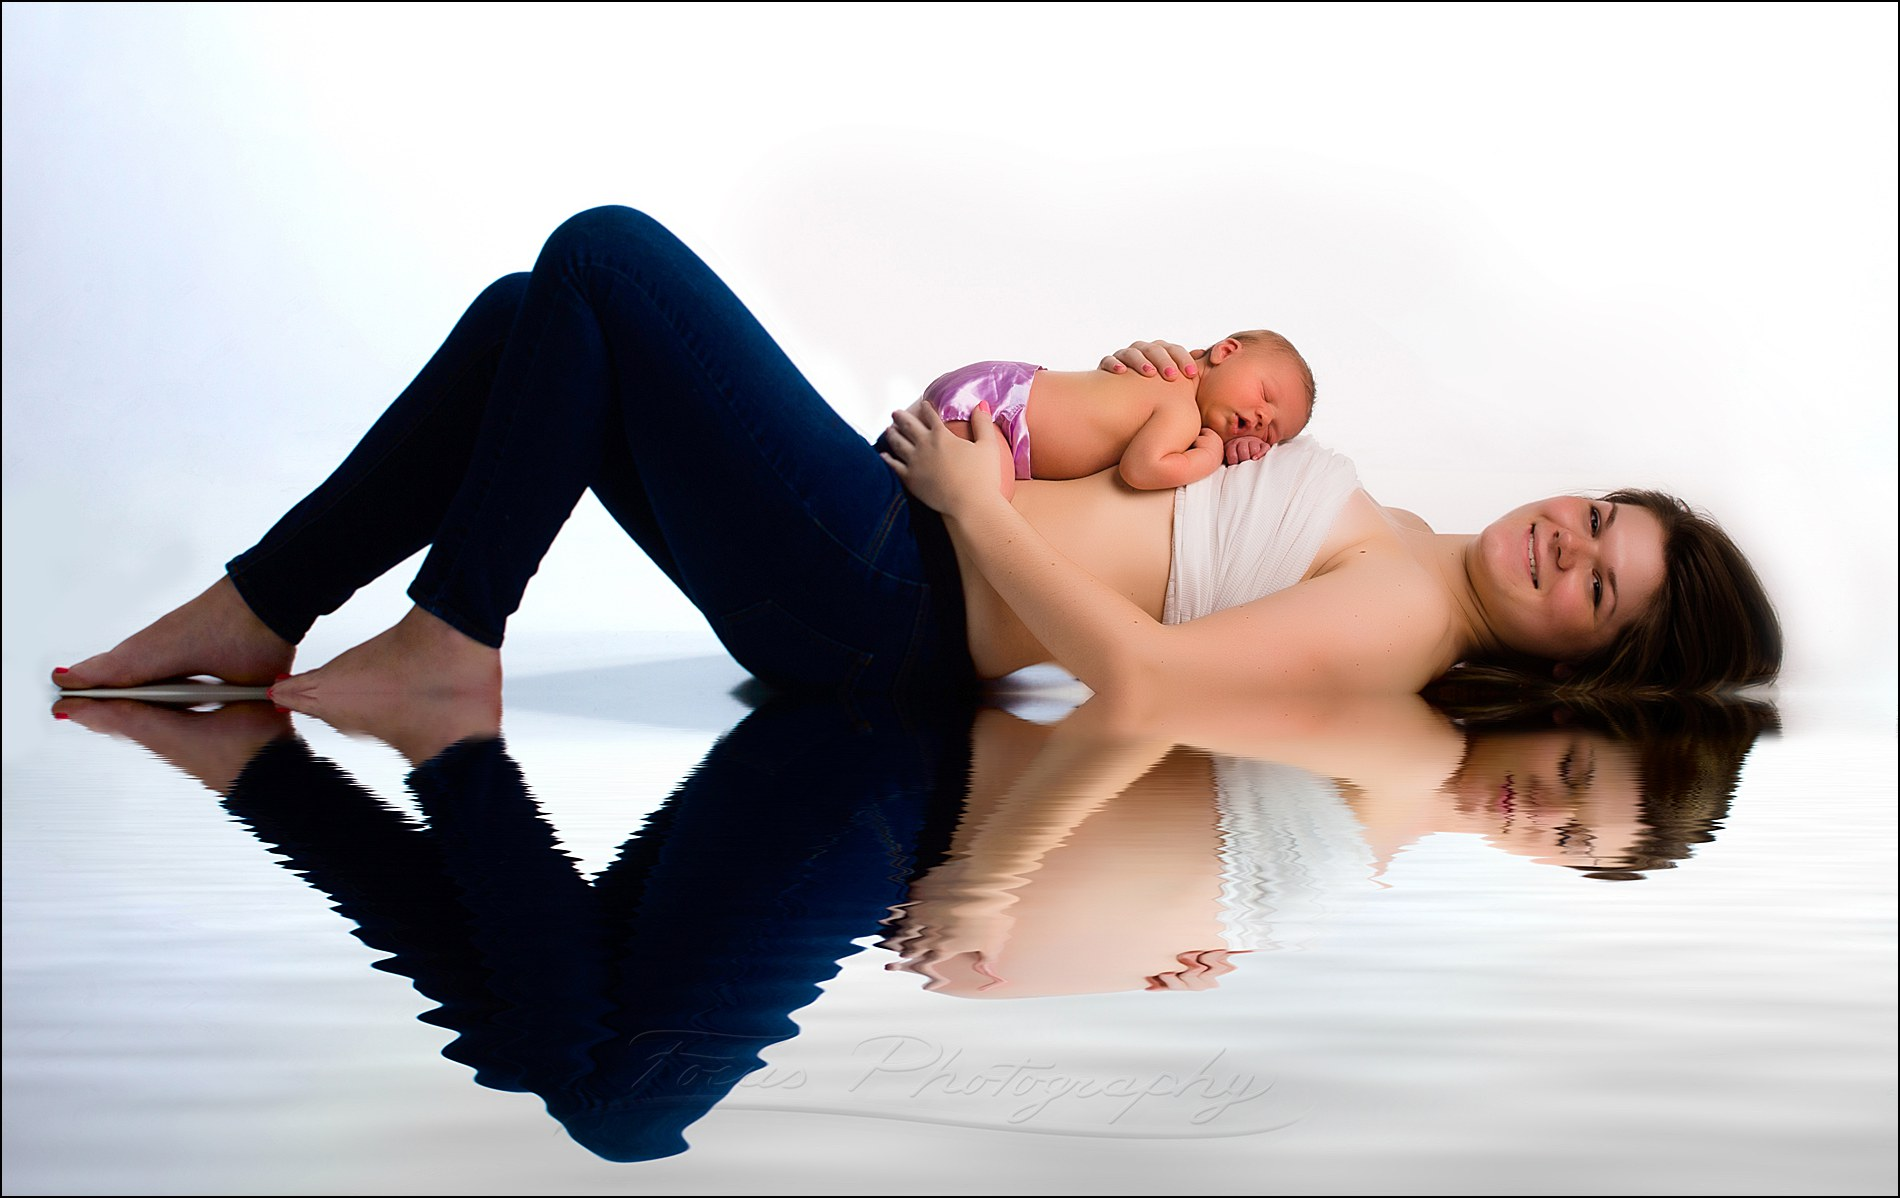 newborn photography and maternity pictures combined to crate a before/after image of pregnancy